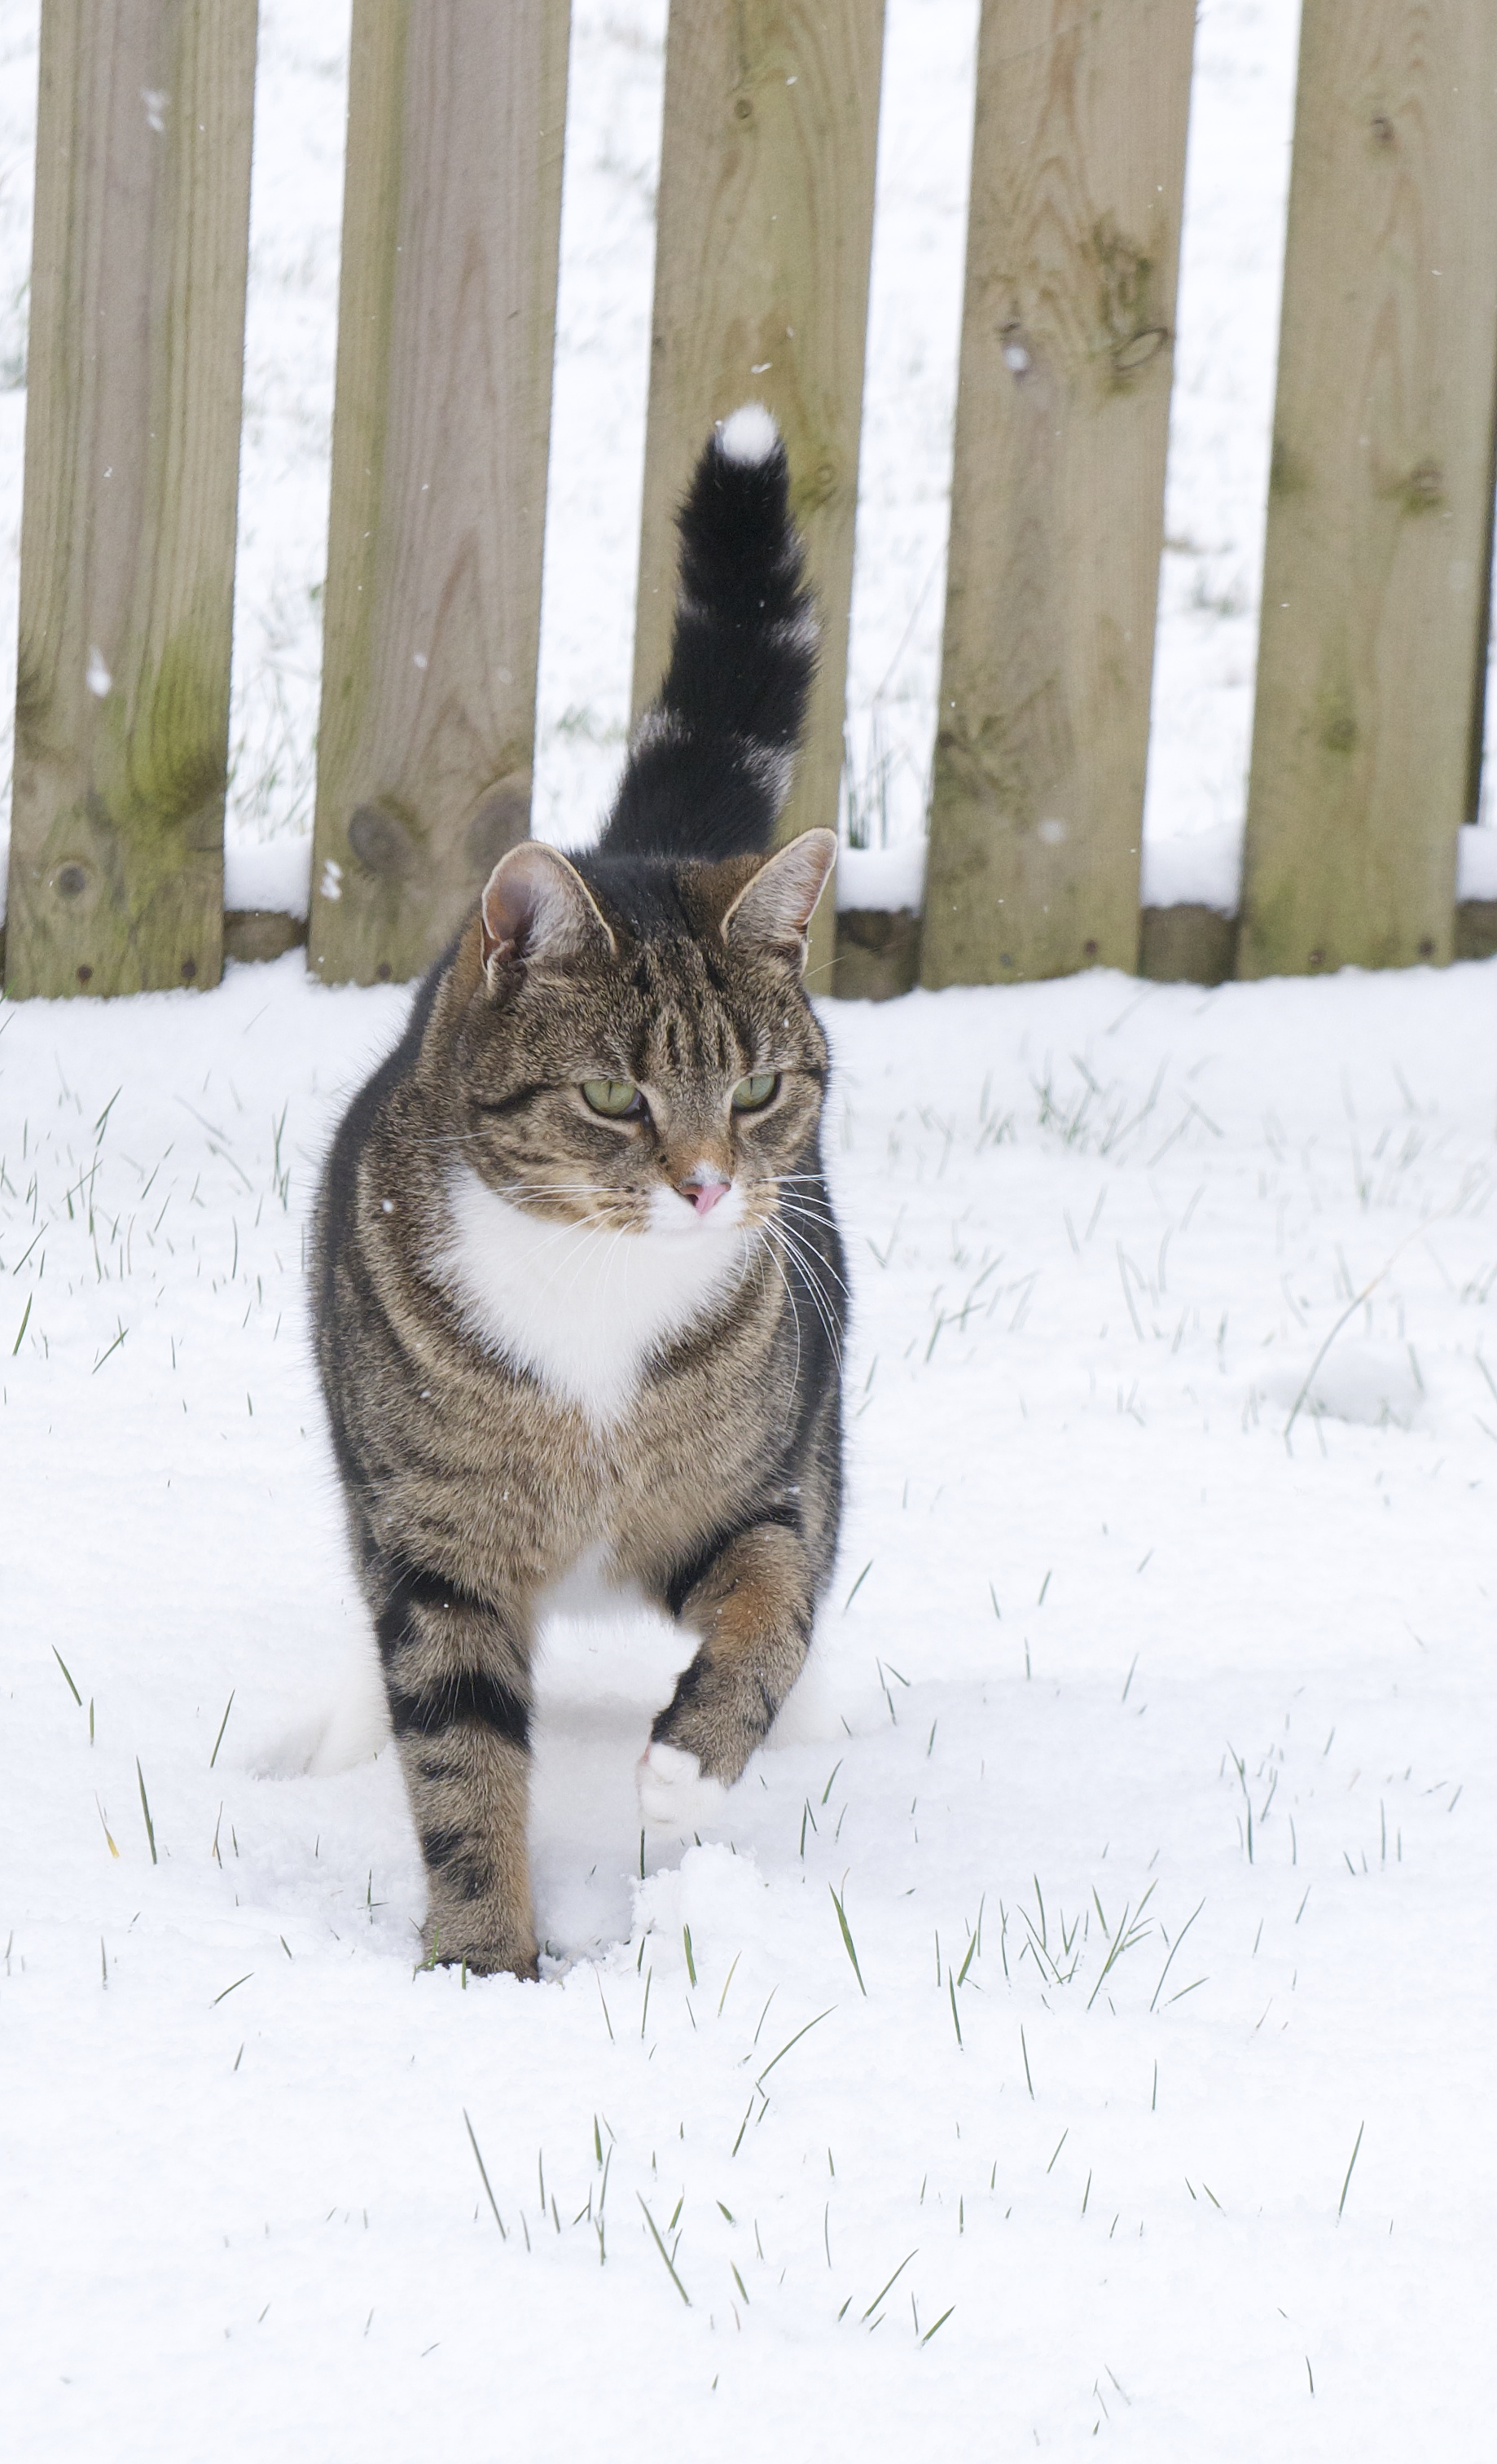 Purdey playing in the snow (March 2013)